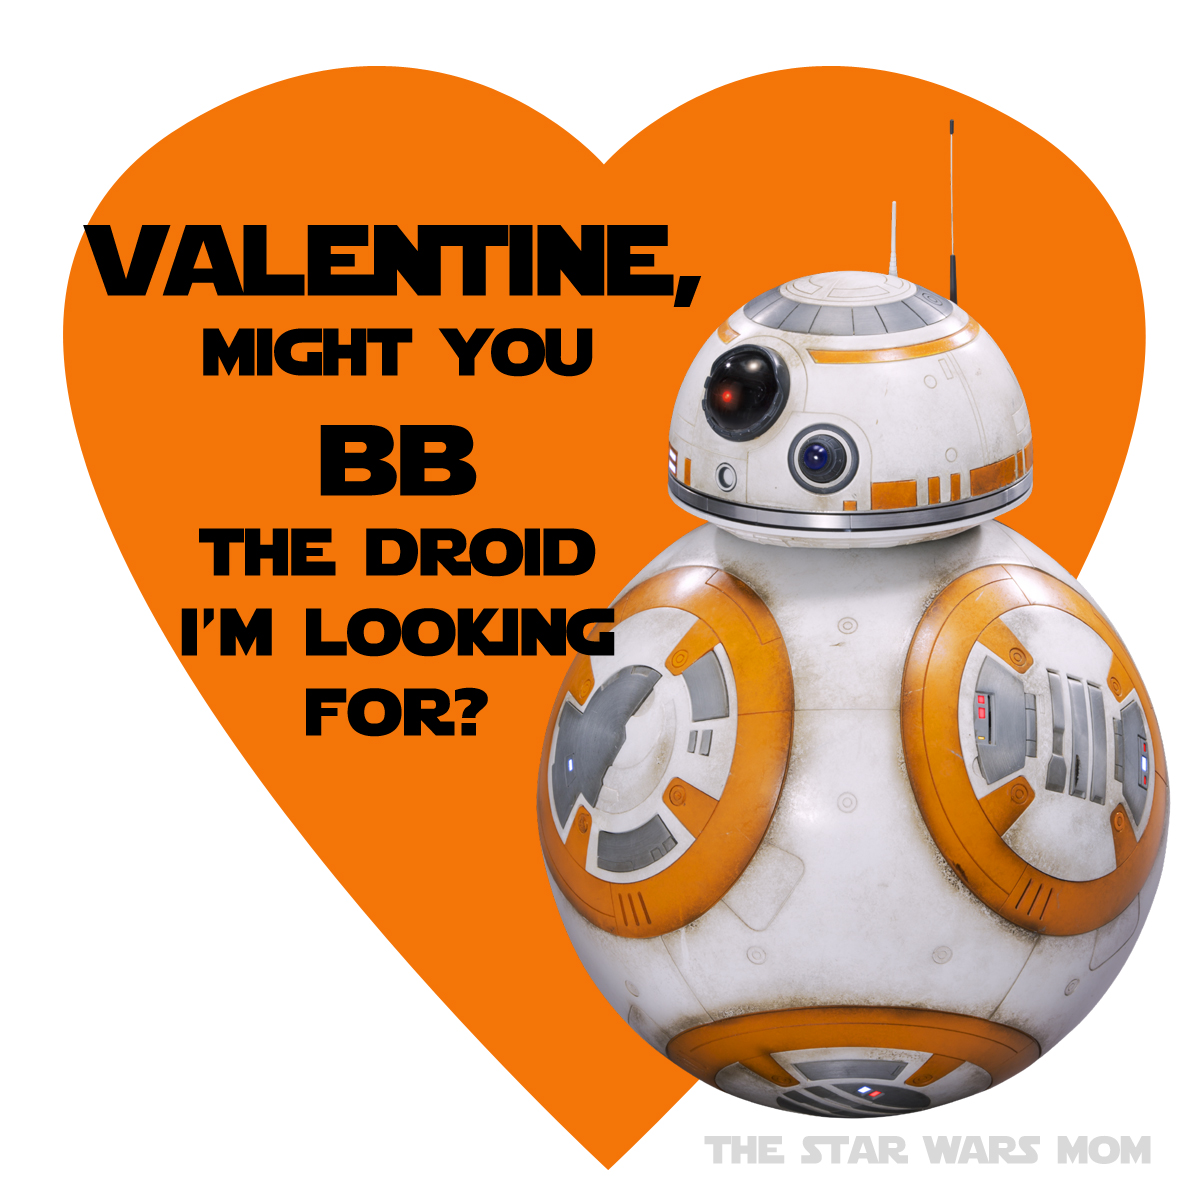 photo relating to Bb 8 Printable identify Kylo Ren, Rey, and BB-8 Valentines Free of charge Printables - The